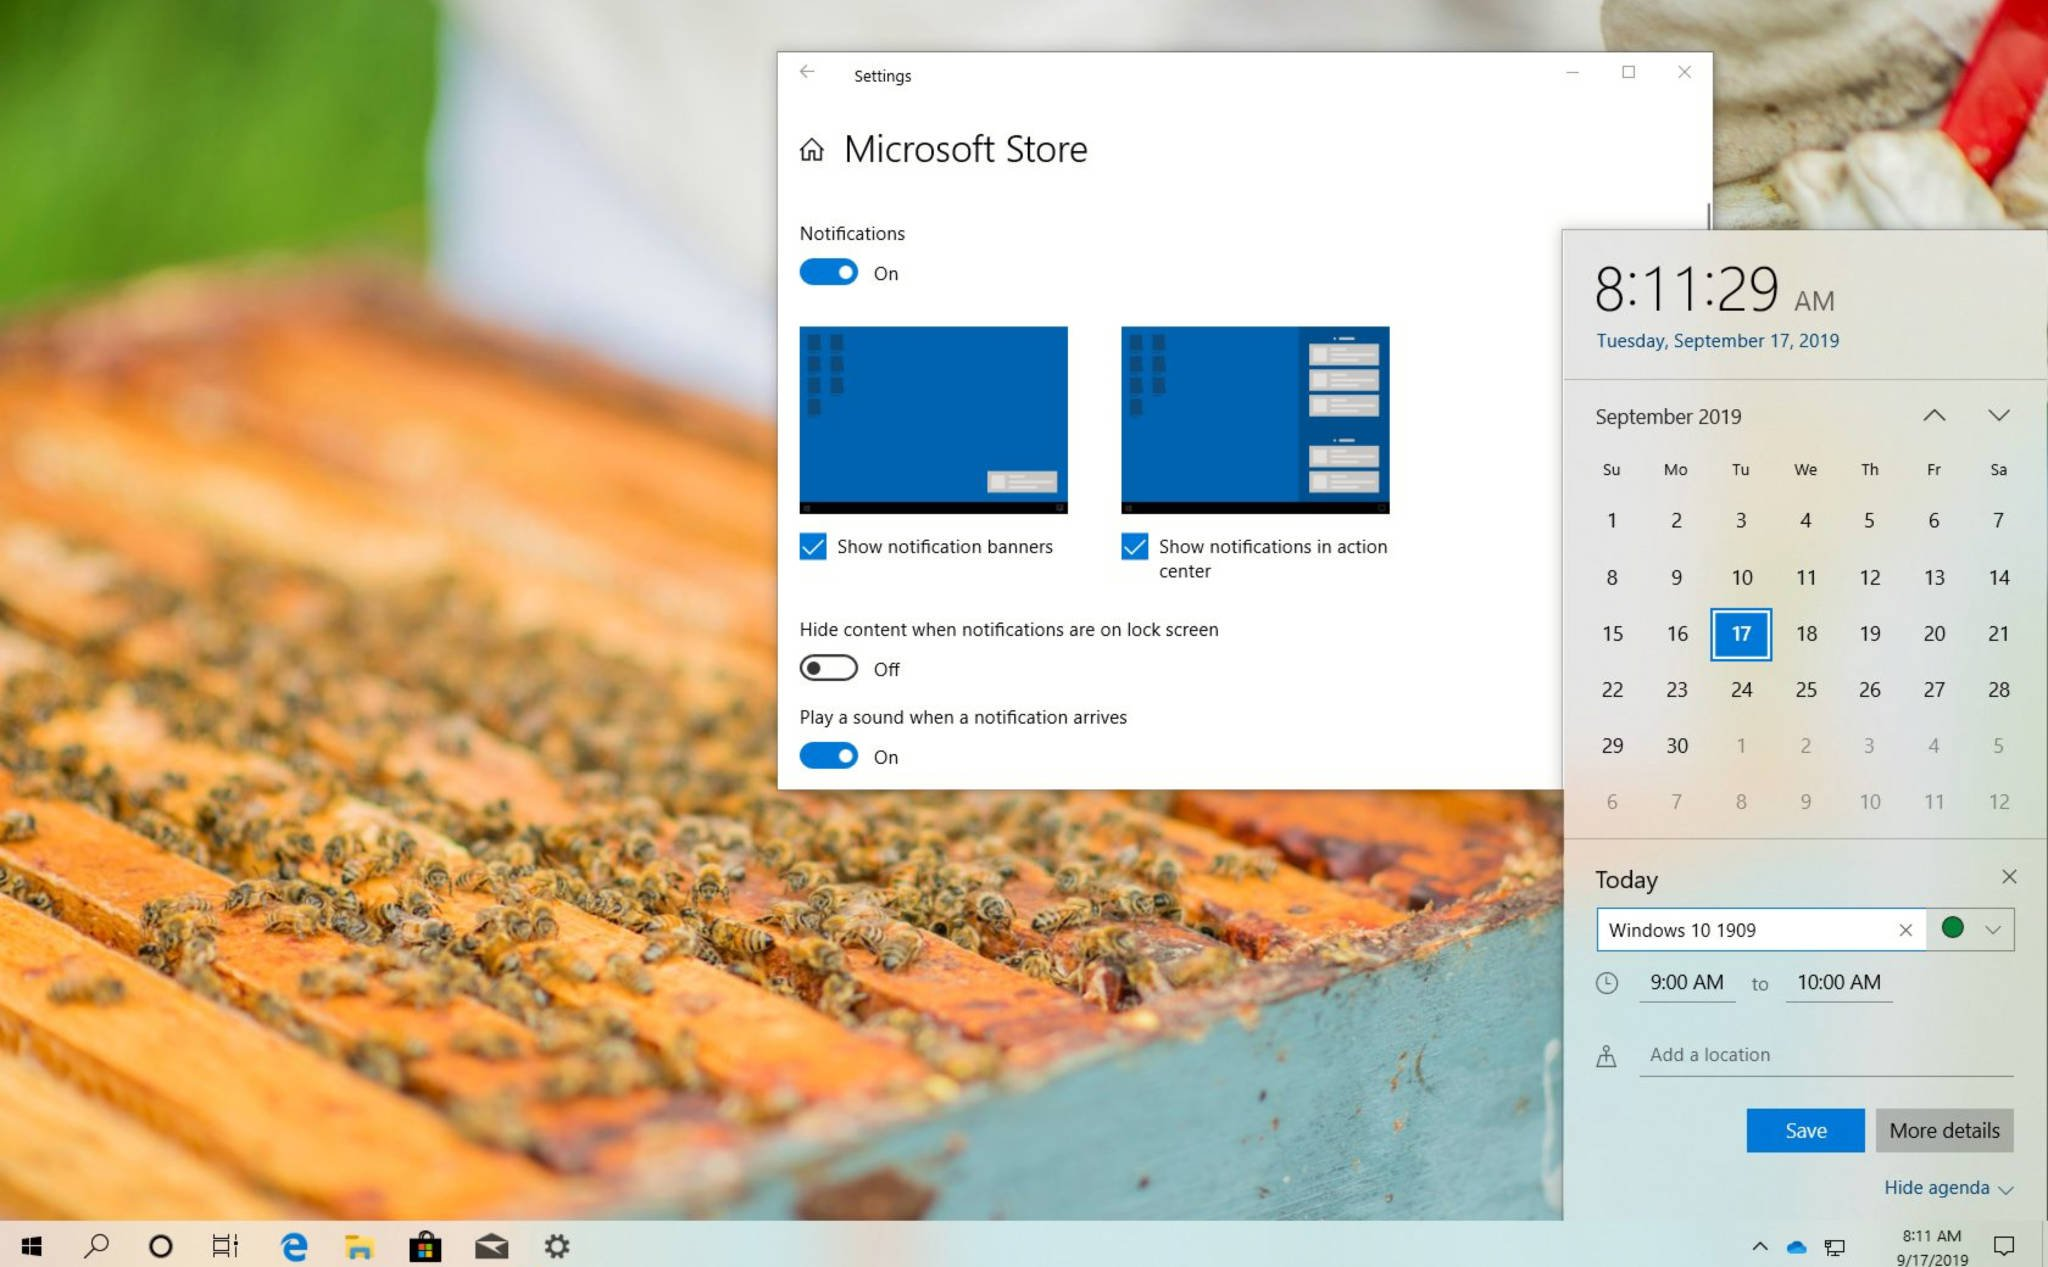 Already able to update Windows 10 1909 final version via Release Preview, invite you